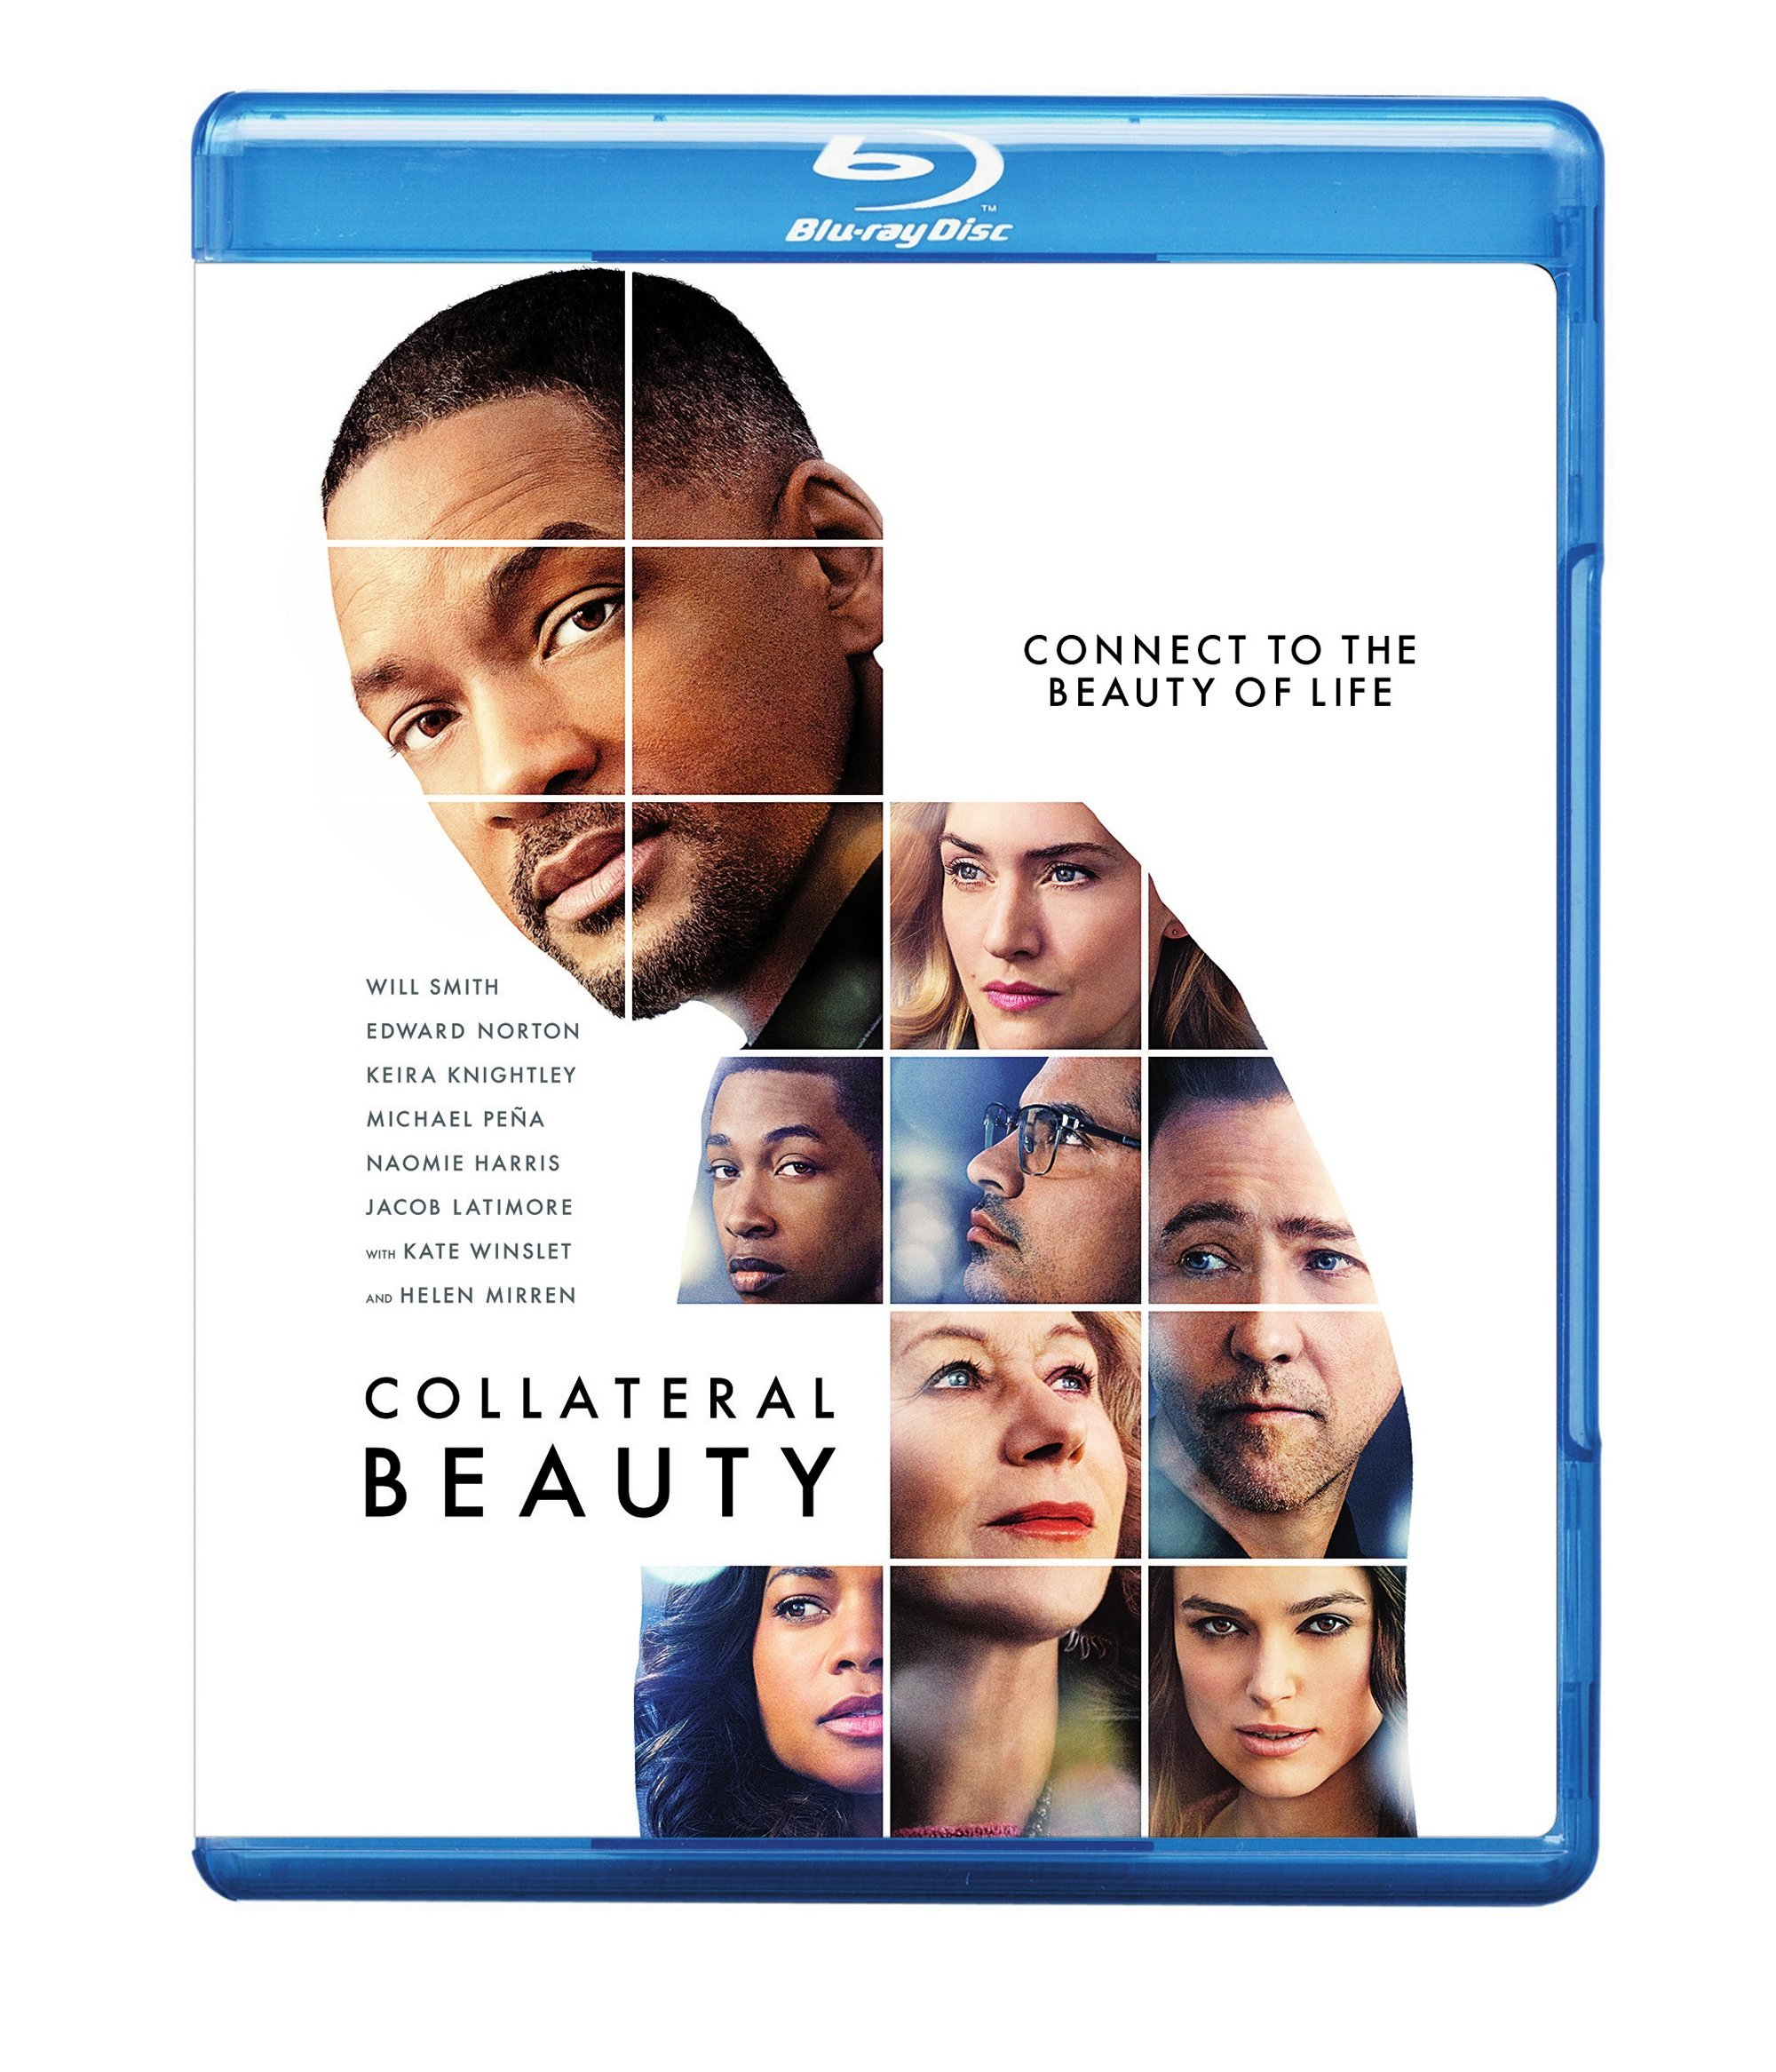 Blu-ray : Collateral Beauty (Ultraviolet Digital Copy, Digitally Mastered in HD, Eco Amaray Case)